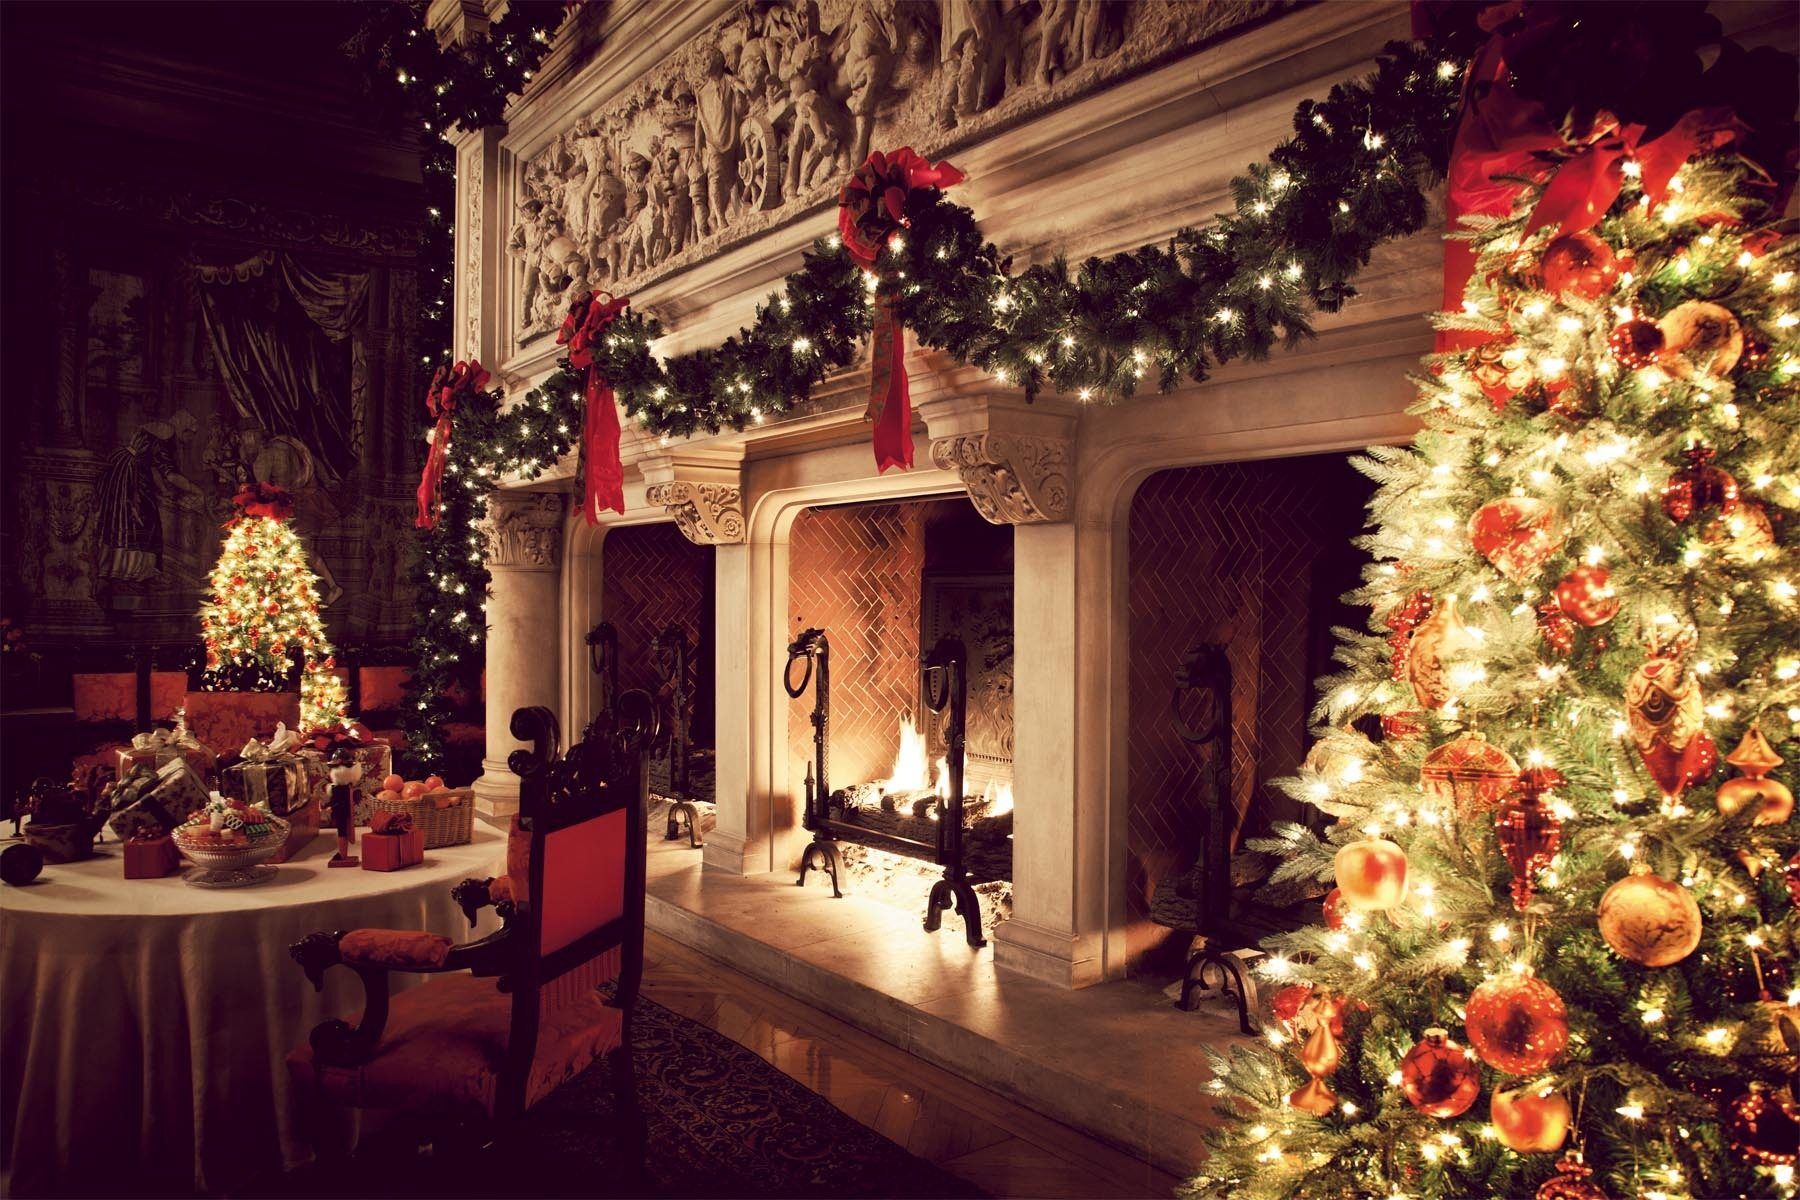 Biltmore fireplace at christmas skimbaco lifestyle for Home christmas decorations uk